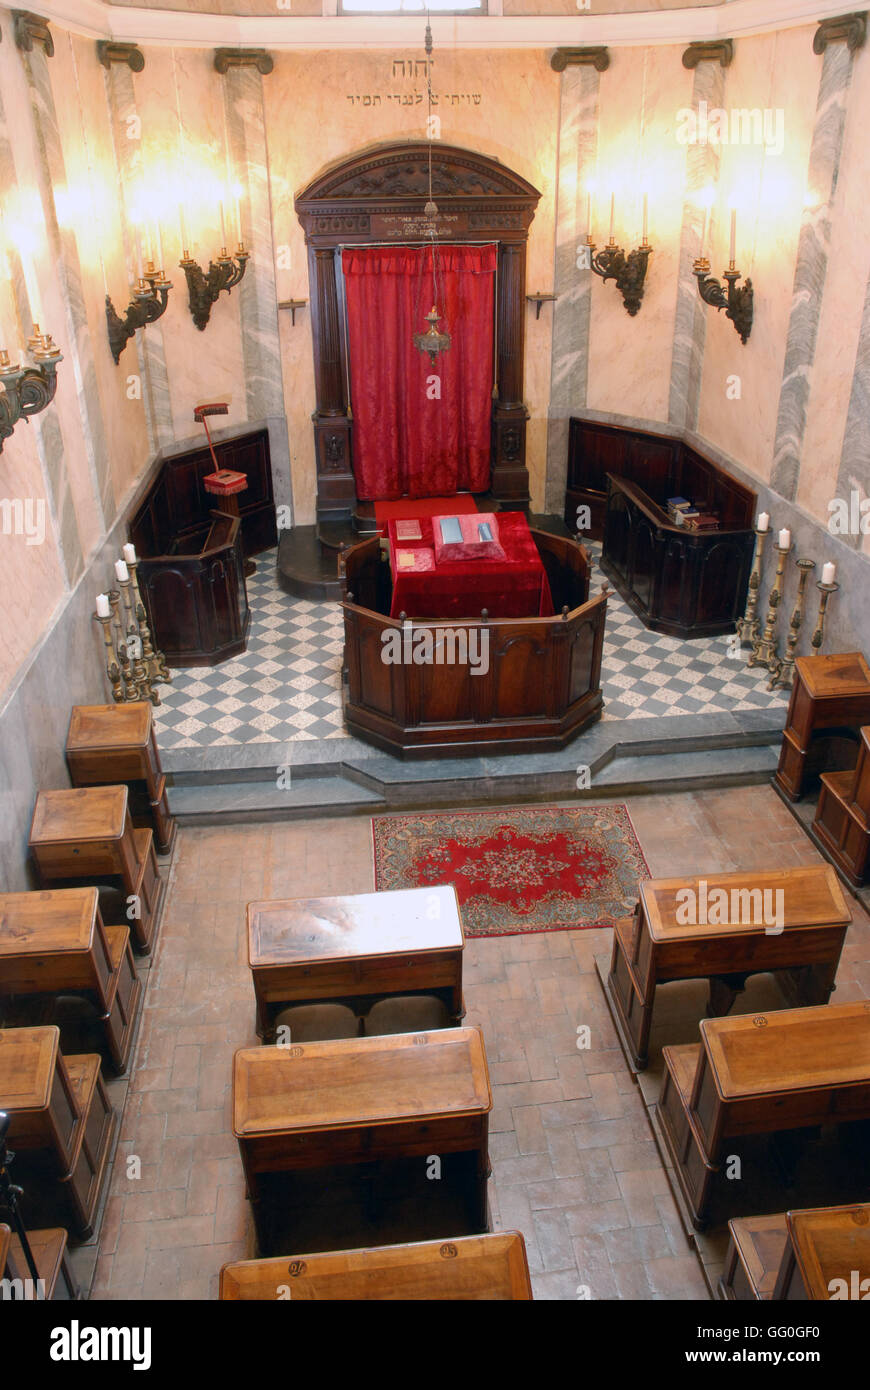 5625.Interrior of the Synagogue in Parma, Italy. Built in 1822 - Stock Image